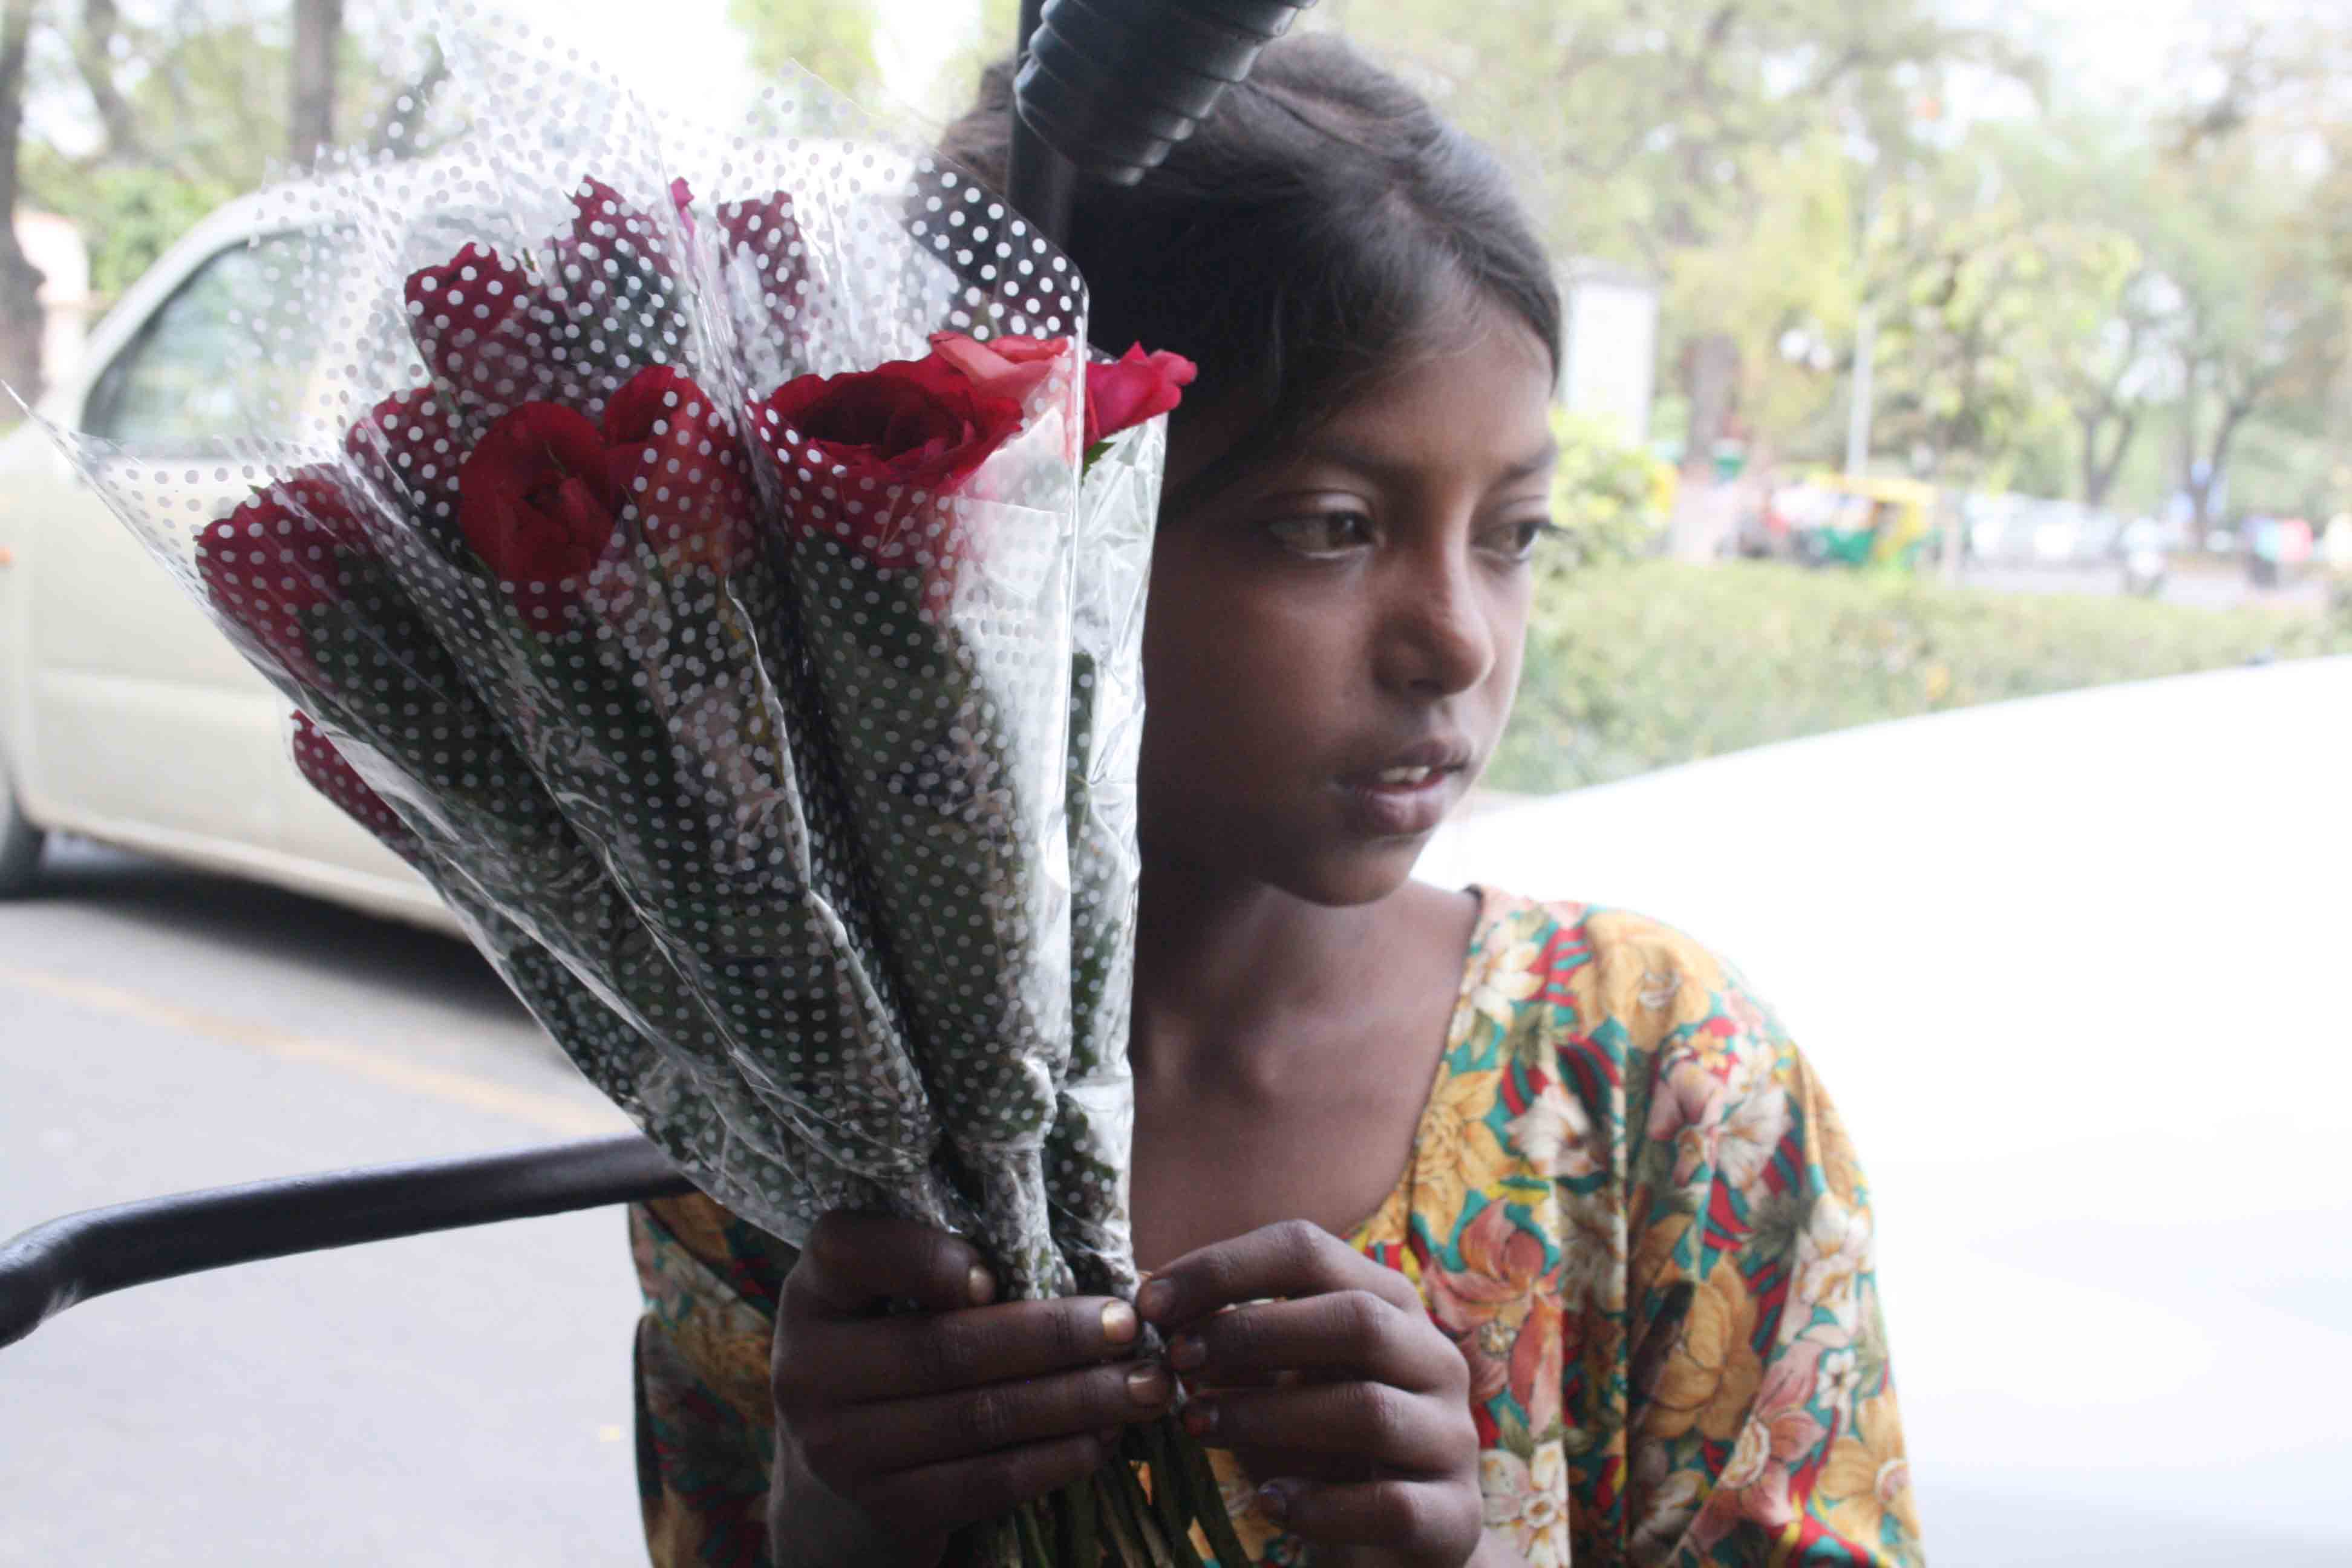 City Moment – The Girl With Red Roses, Near Sai Baba Temple